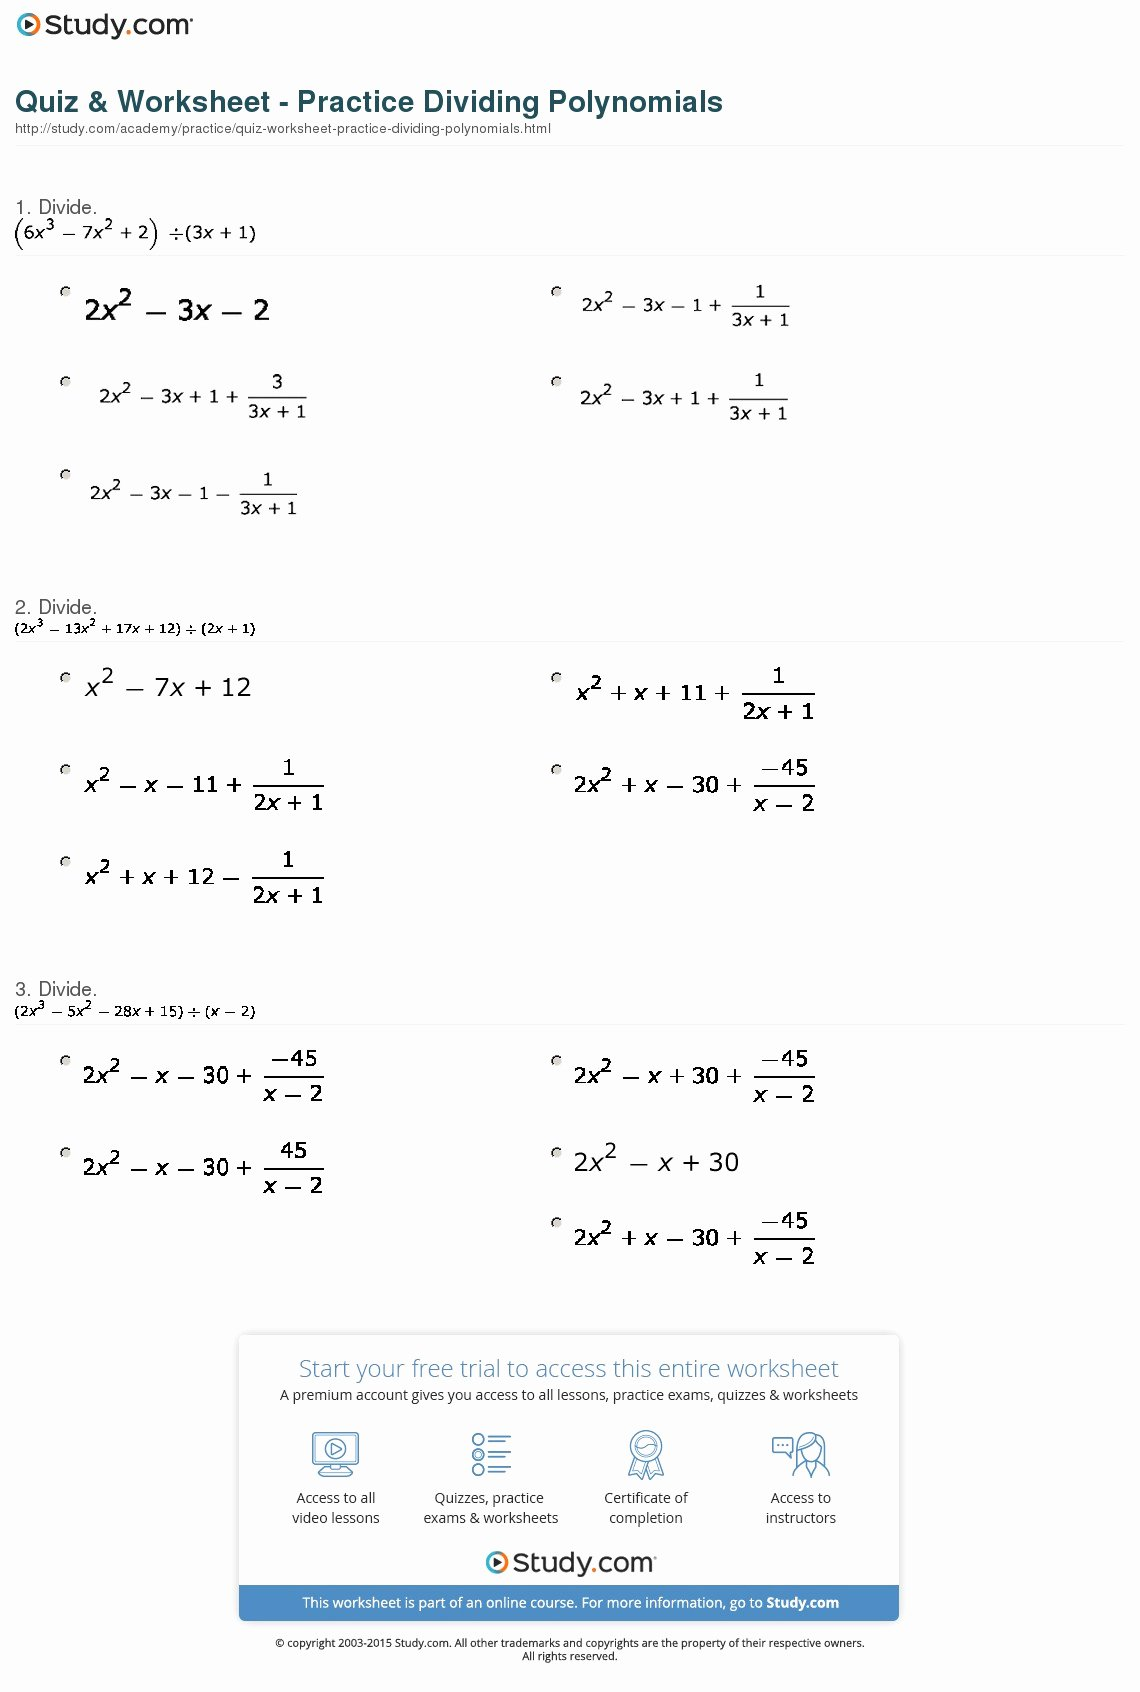 Dividing Polynomials Worksheet Answers New Quiz & Worksheet Practice Dividing Polynomials